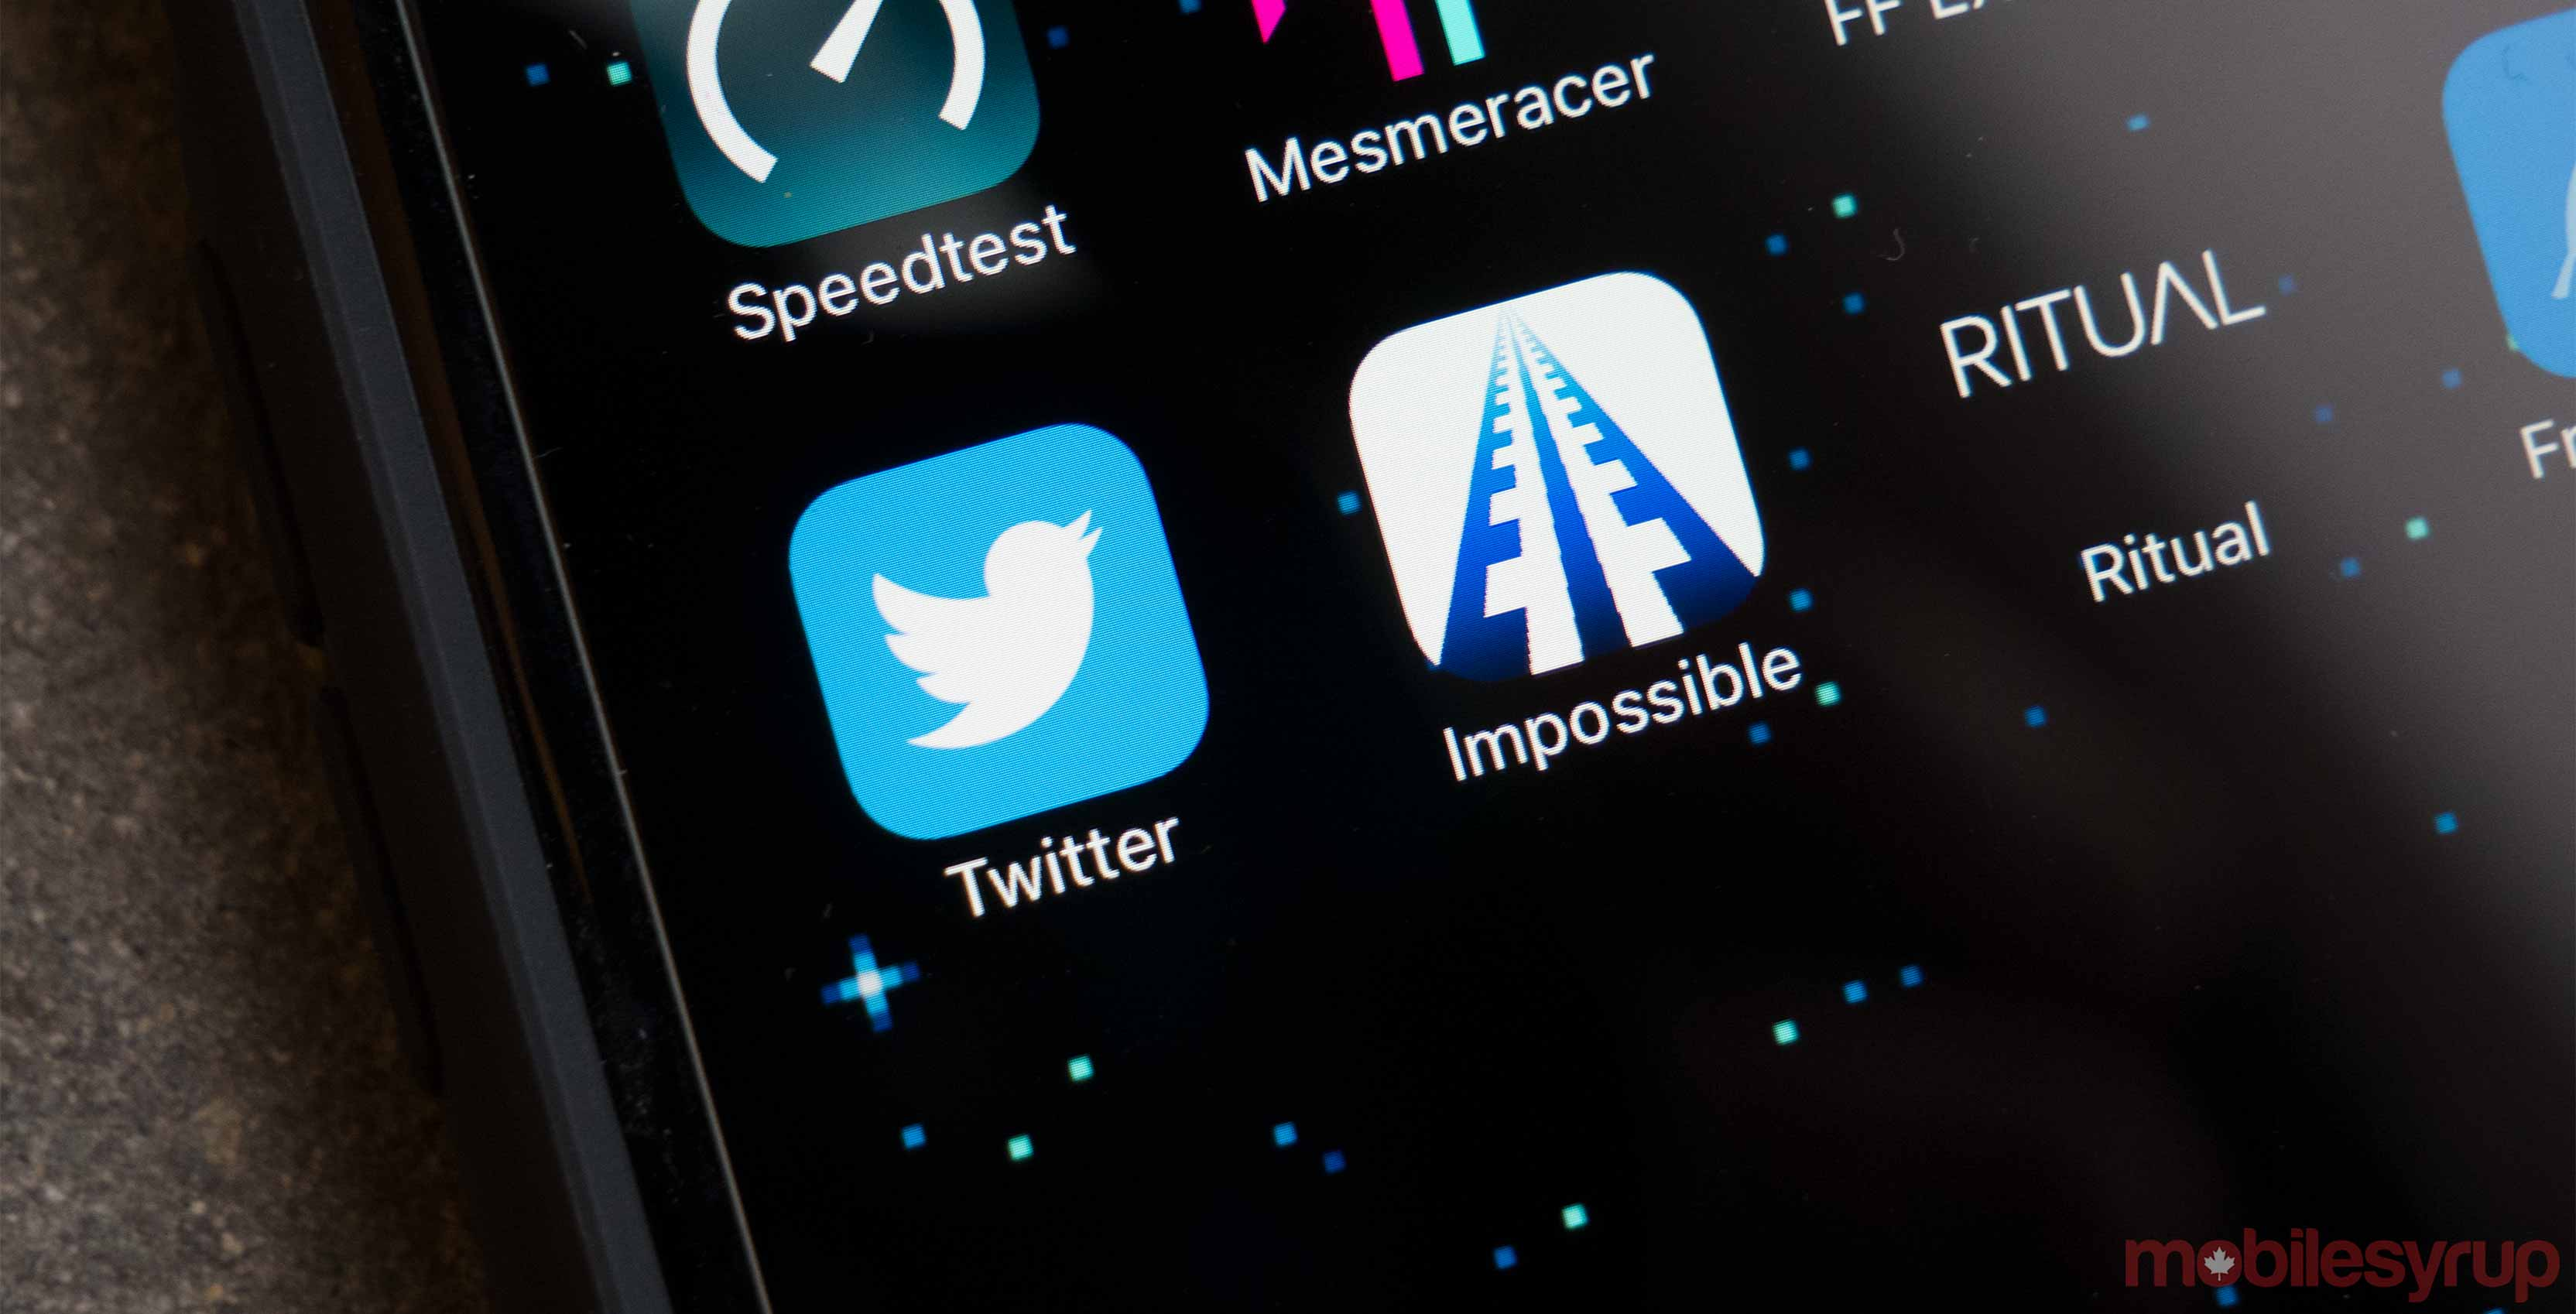 Twitter application on smartphone